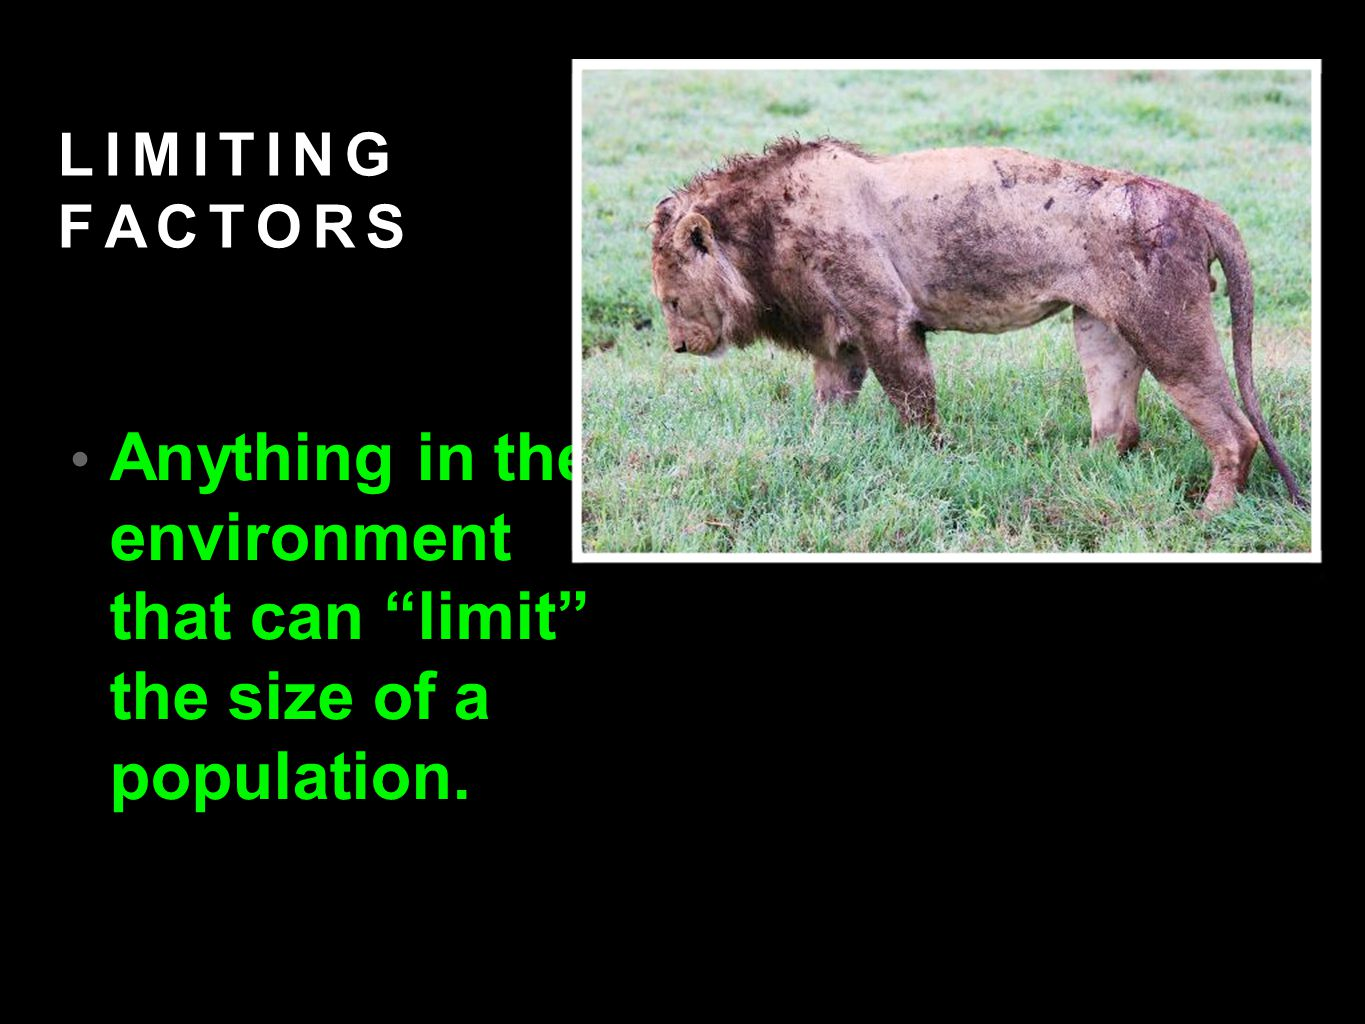 FOR EXAMPLE: A large population of lions needs more food than a small population.